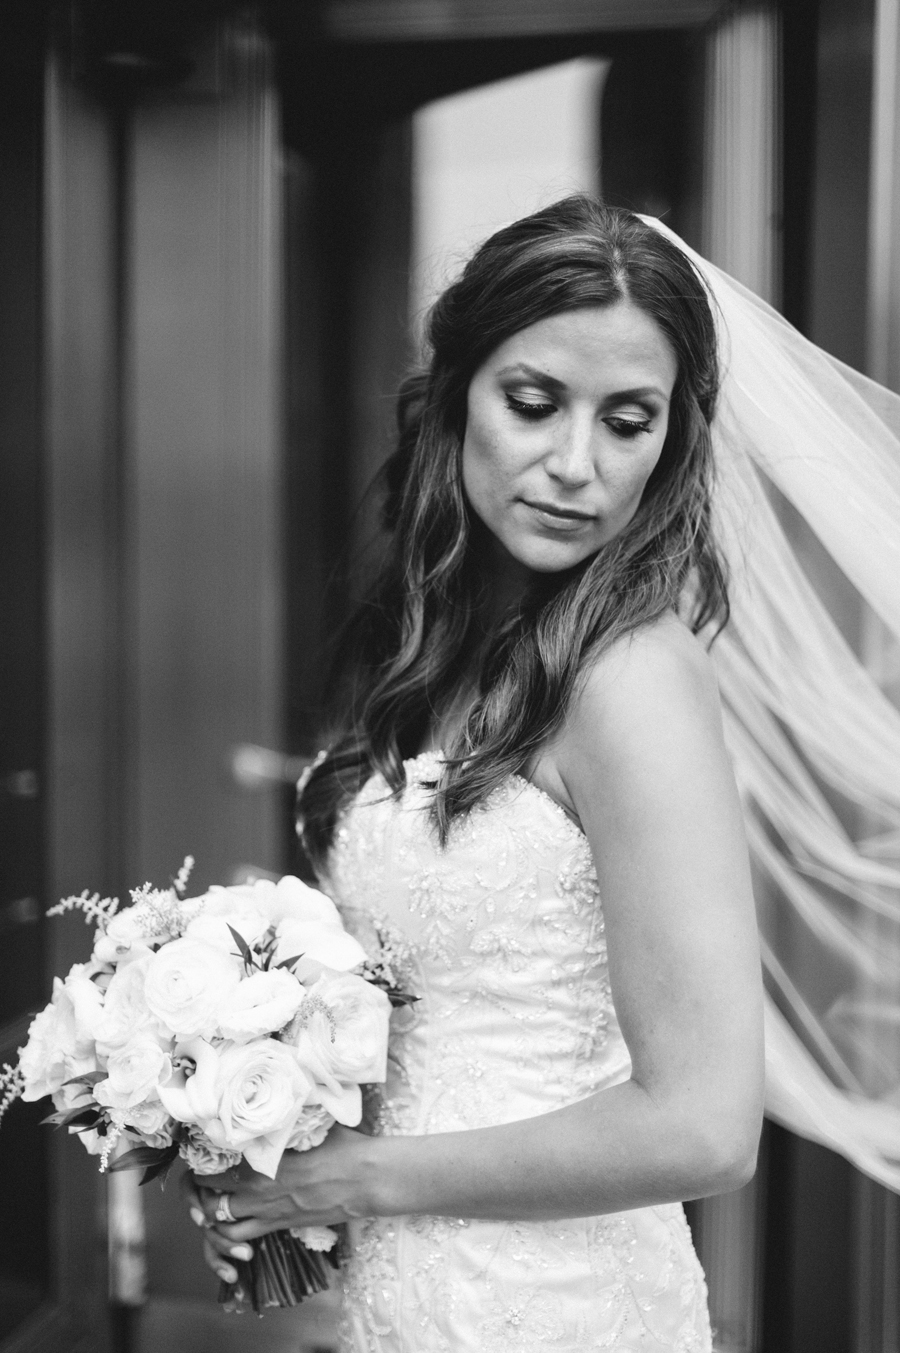 Rainy Chicago Wedding with Reception at McDonald's Corporation by Two Birds Photography22